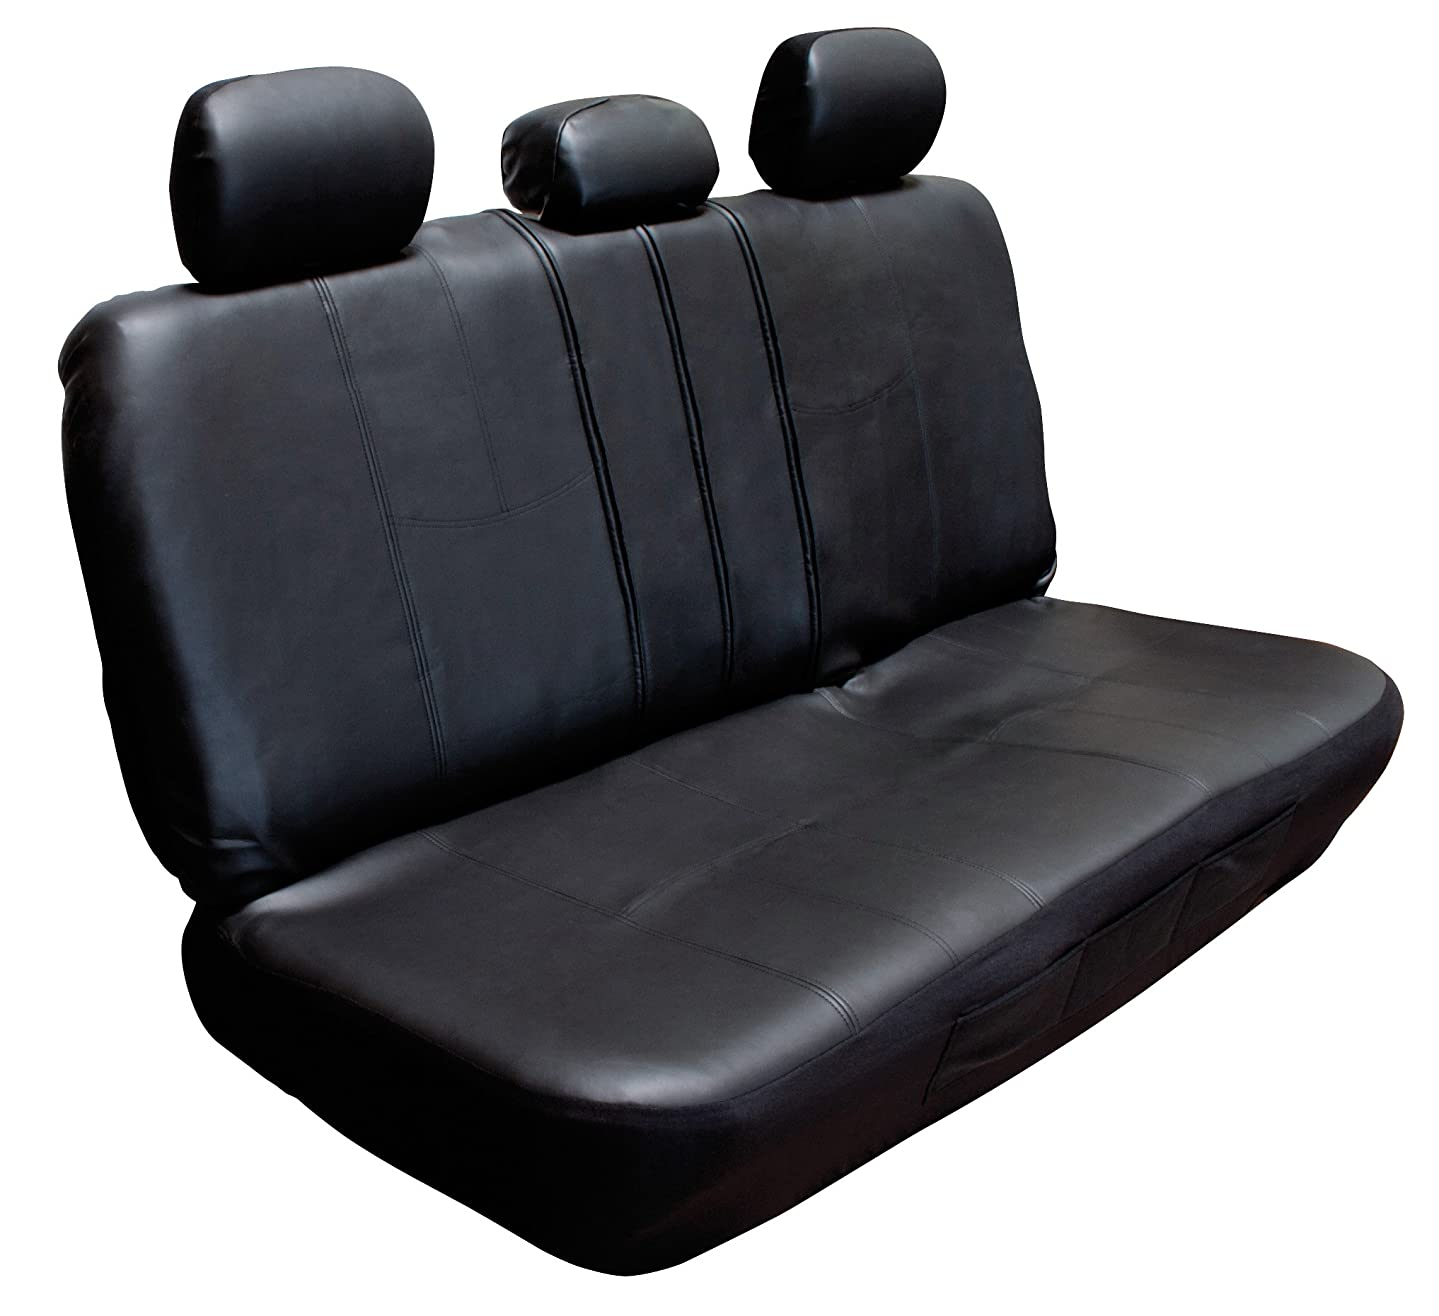 Type S (SC31347-6 Black Faux Leather Rear Seat with Zipper